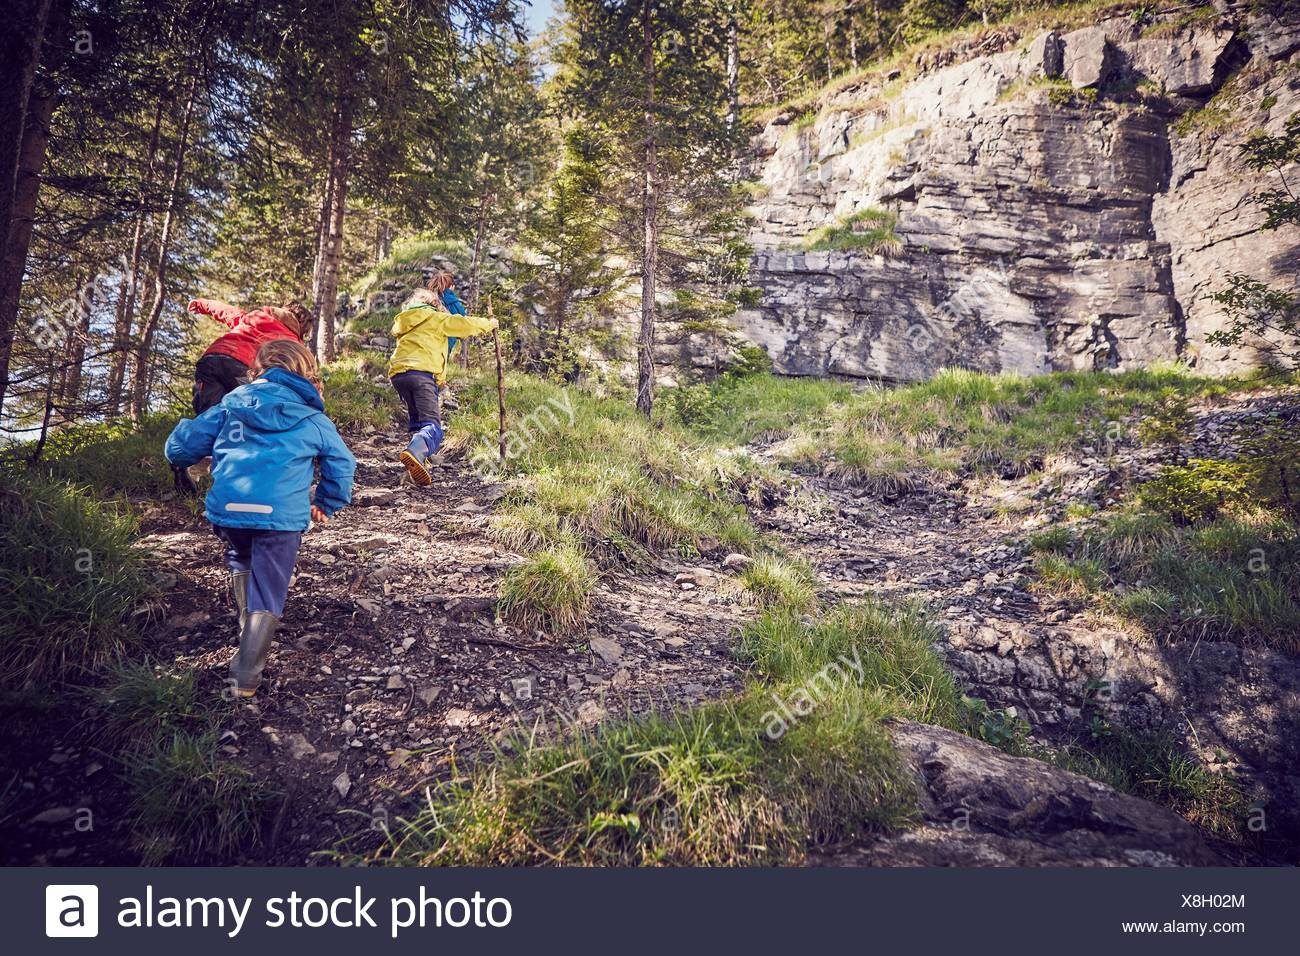 Group of children in forest, walking uphill, rear view - Stock Image